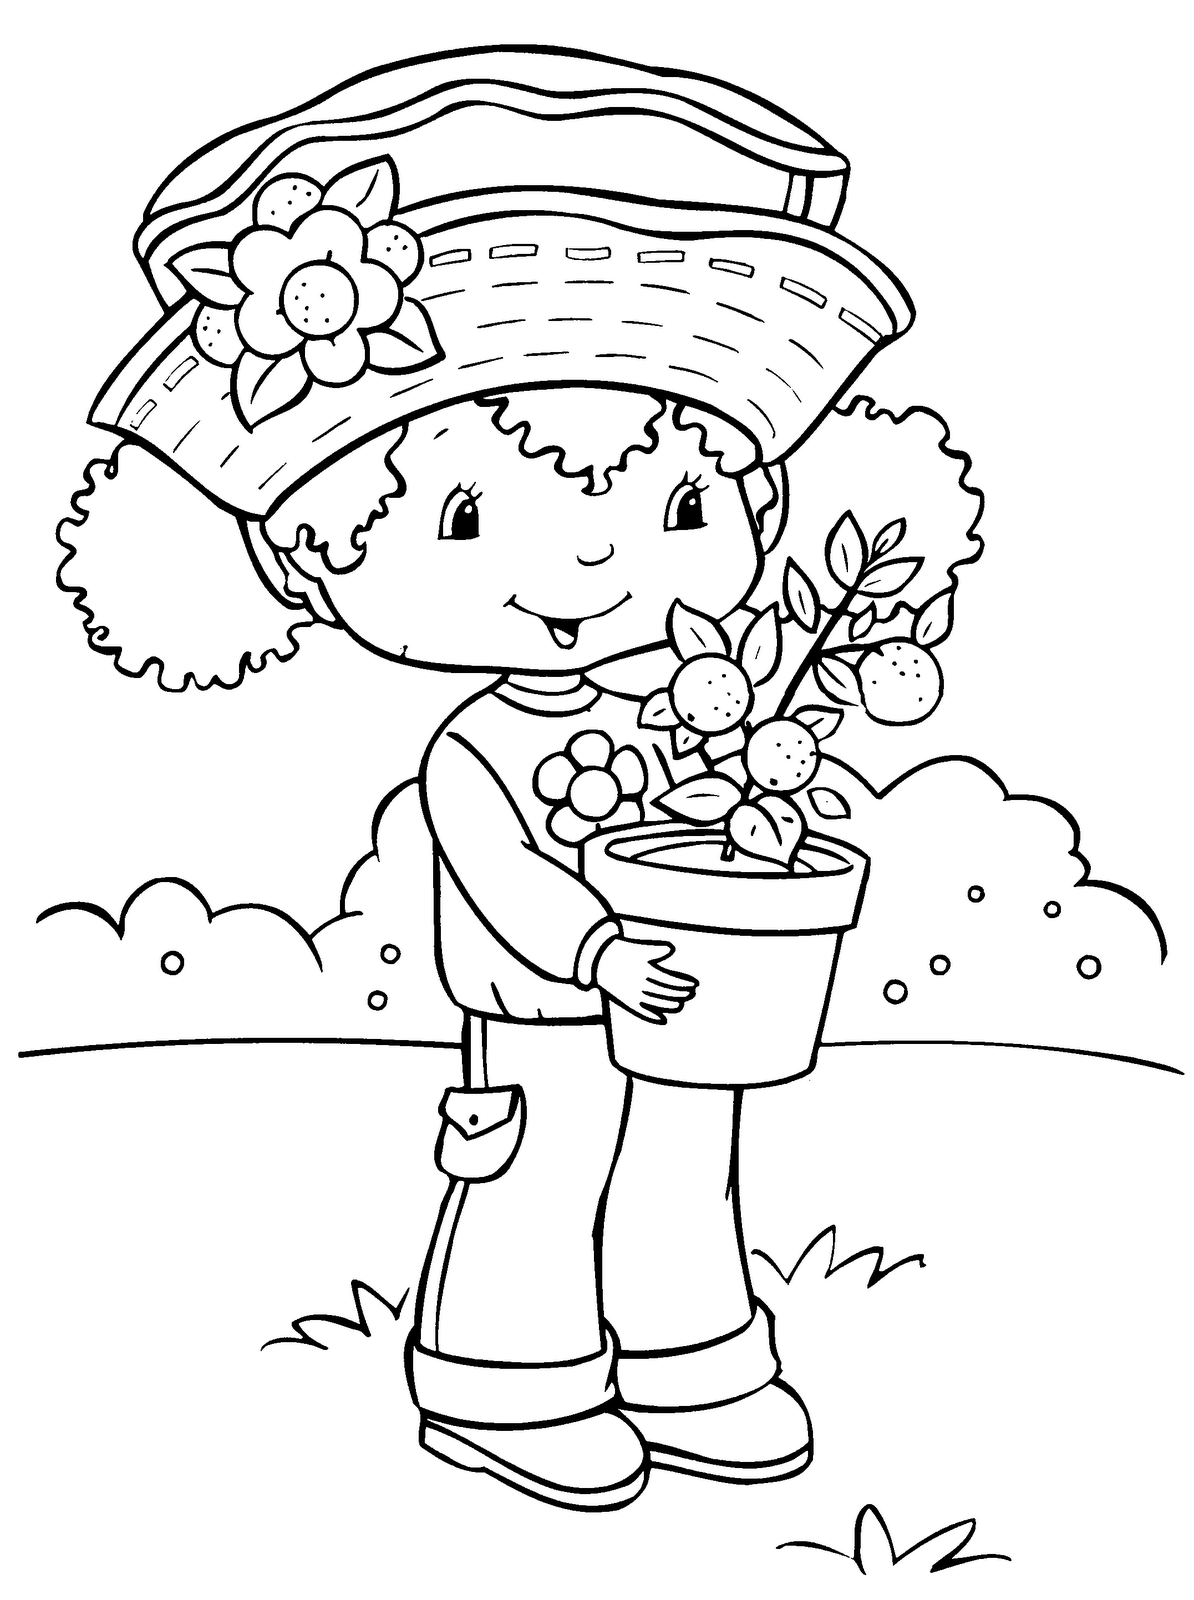 coloring pages of strawberry shortcake strawberry shortcake coloring pages learn to coloring pages strawberry shortcake of coloring